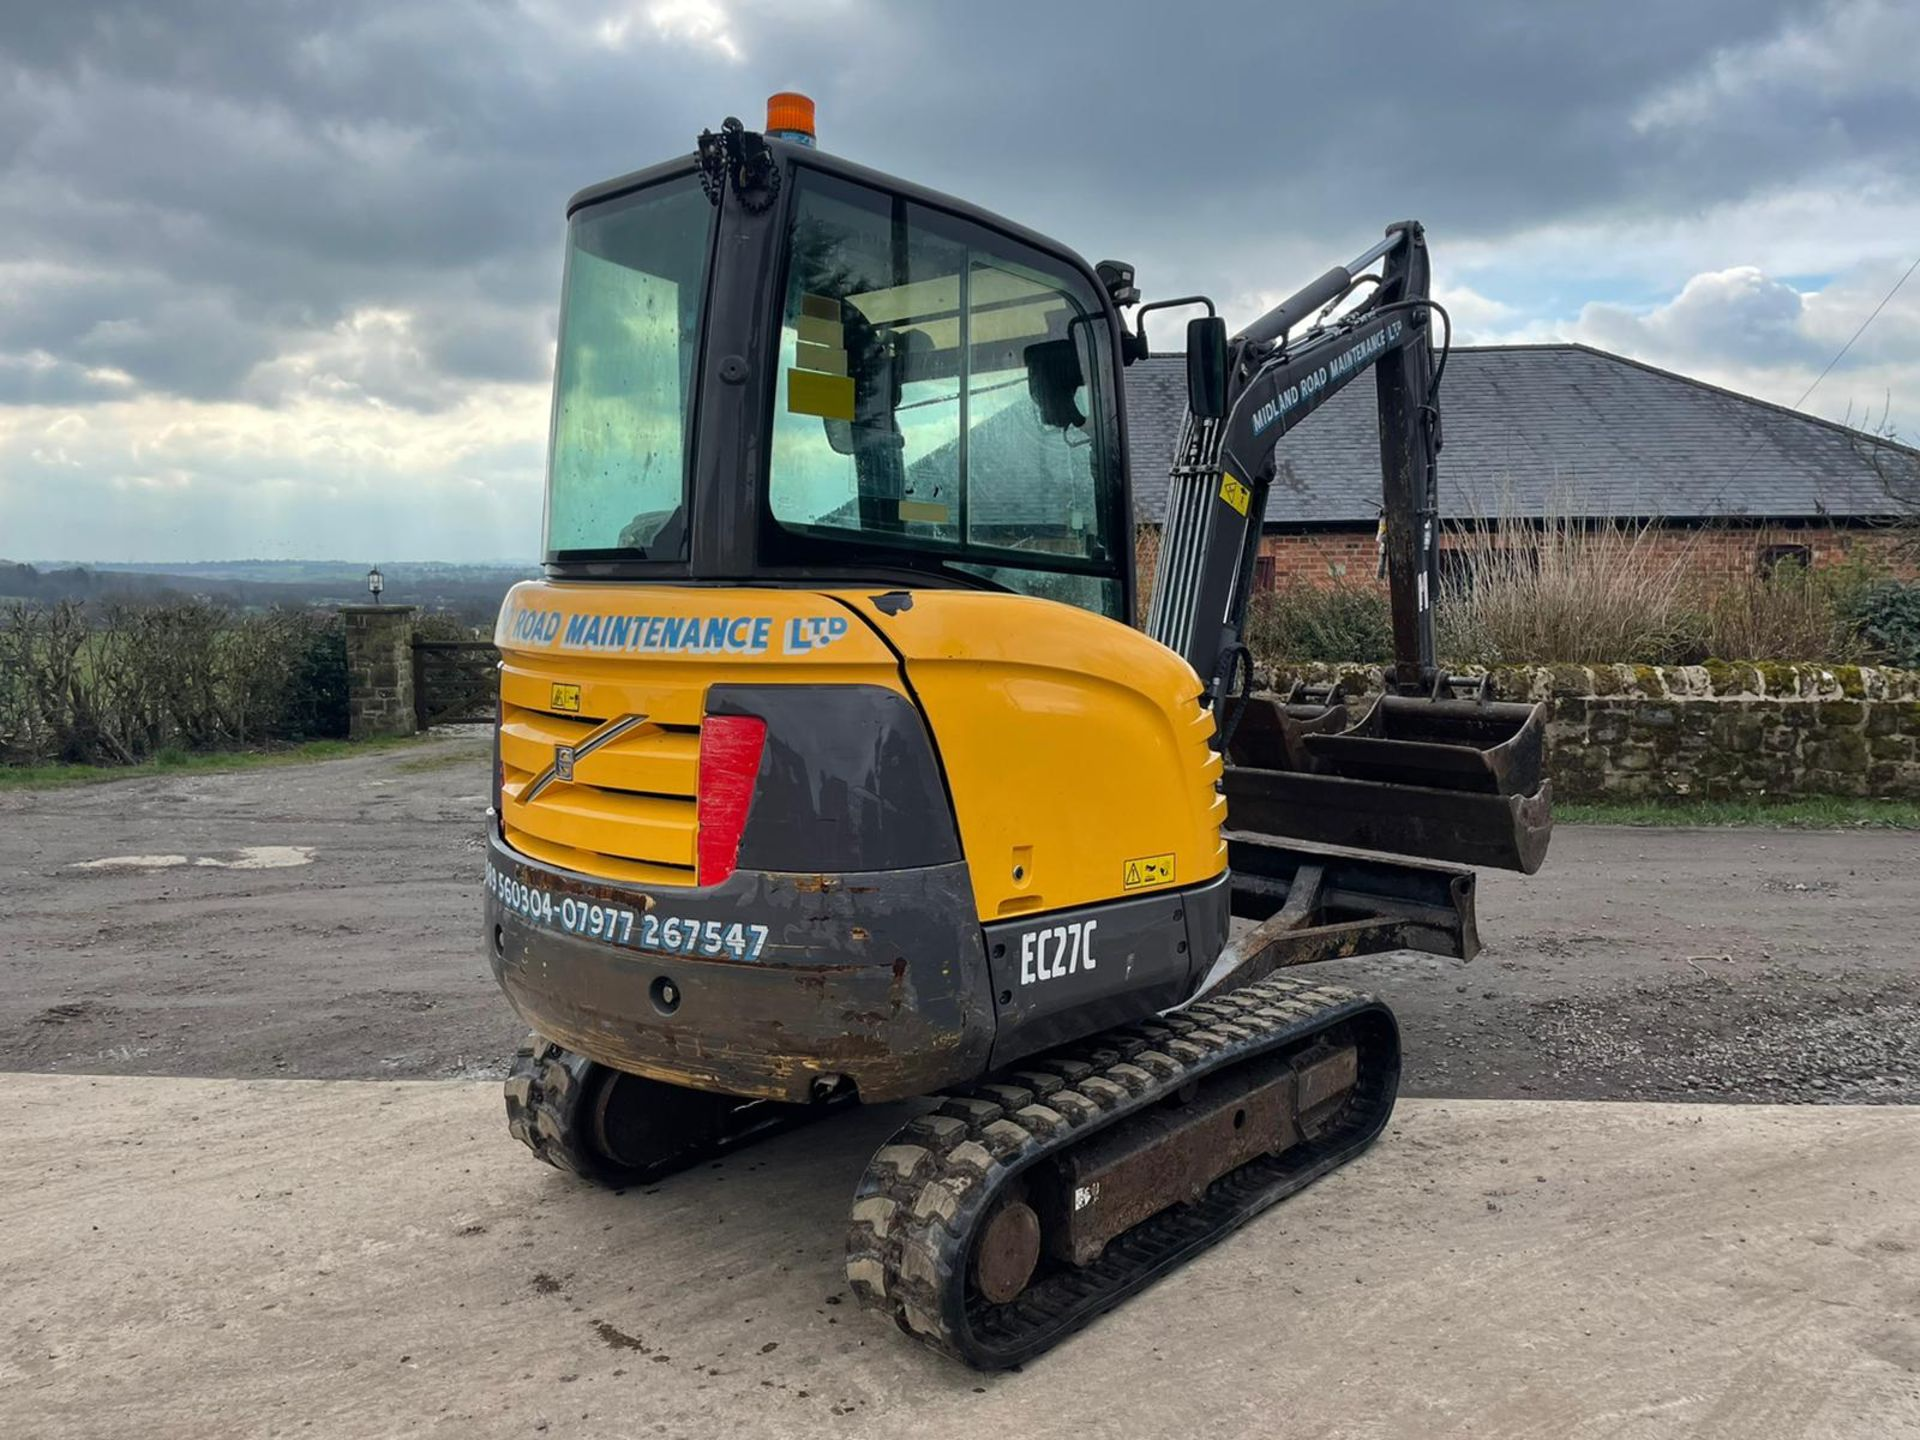 2013 VOLVO EC27C EXCAVATOR RUNS, DRIVES AND DIGS, X3 BUCKETS INCLUDED - Image 5 of 8